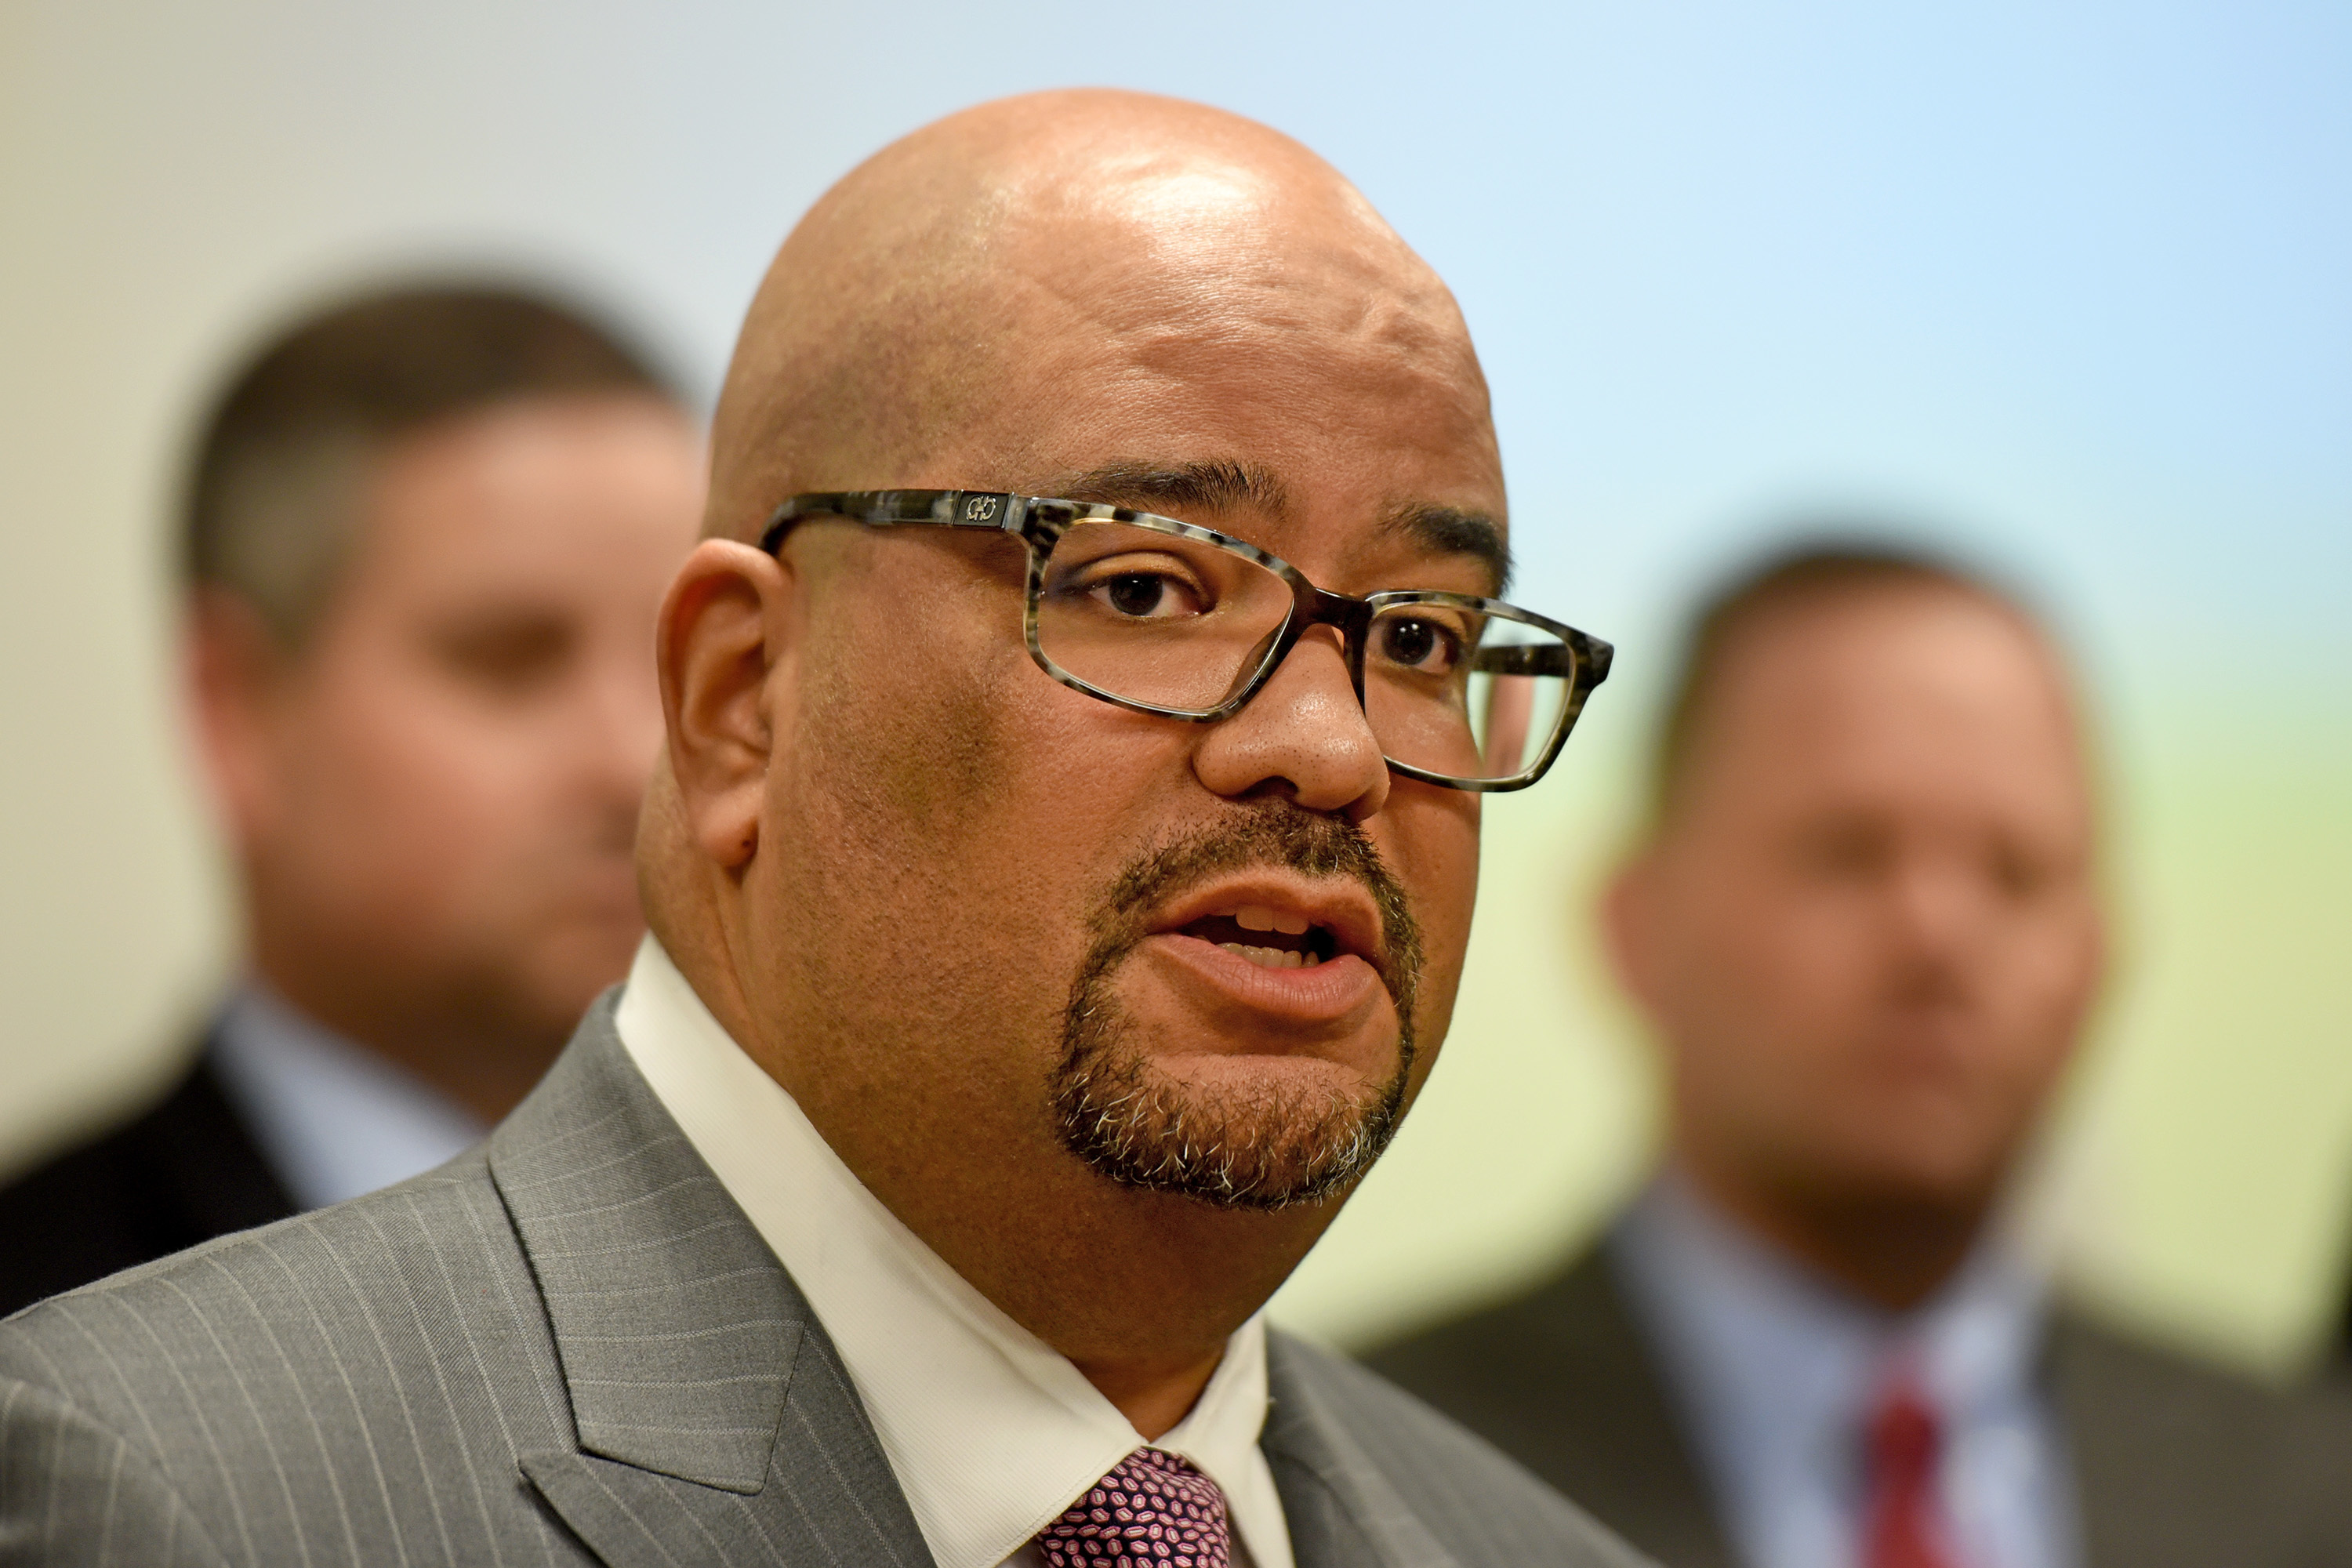 Atlantic County Prosecutor Damon G. Tyner announces at a press conference January 9, 2018 that endocrinologist James Kauffman has been charged with the death of his wife, radio personality April Kauffman. He says it was murder-for-hire plot connected to the Pagan motorcycle gang and designed to prevent her from exposing a vast illegal opioid pill distribution operation. TOM GRALISH / Staff Photographer